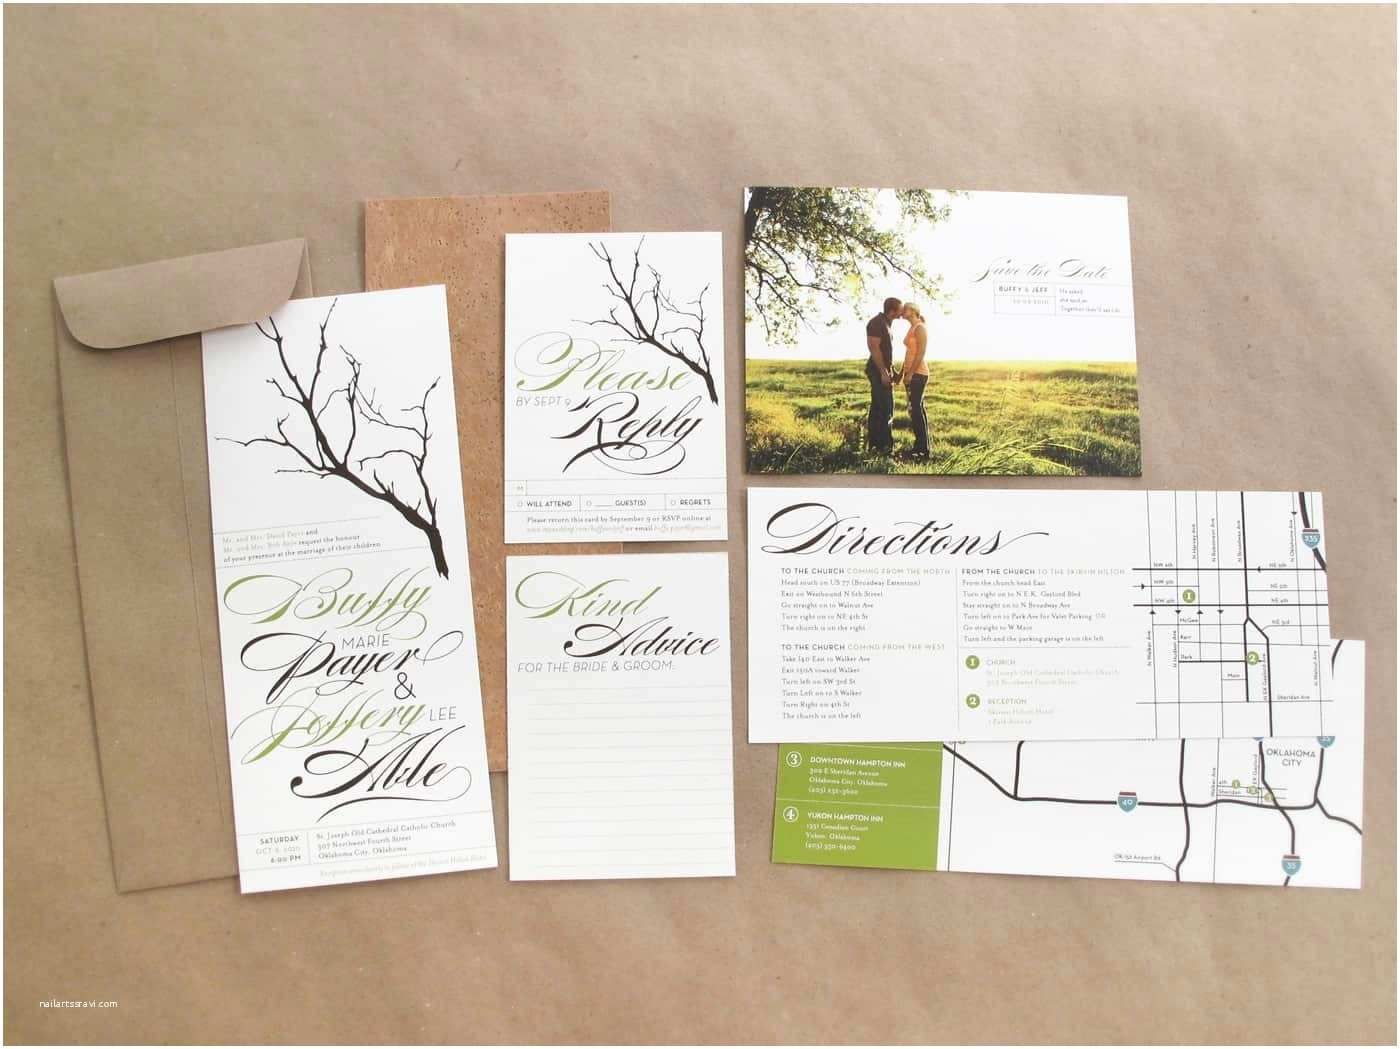 How to Print Your Own Wedding Invitations Create Own Print Your Own Wedding Invitations Designs